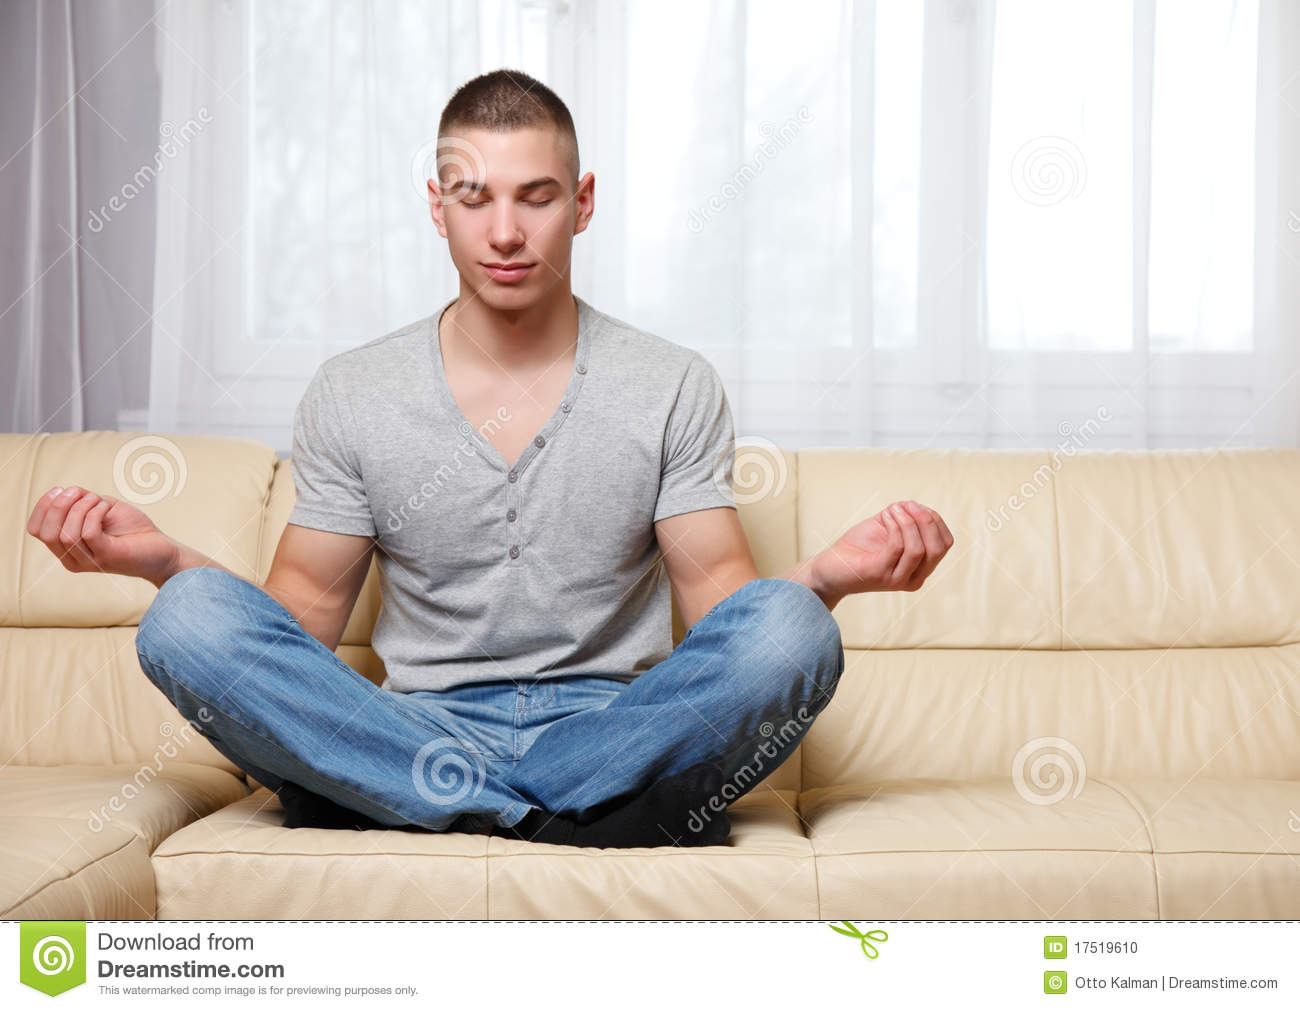 yoga sofa burgundy and loveseat handsome man making on the stock photo image